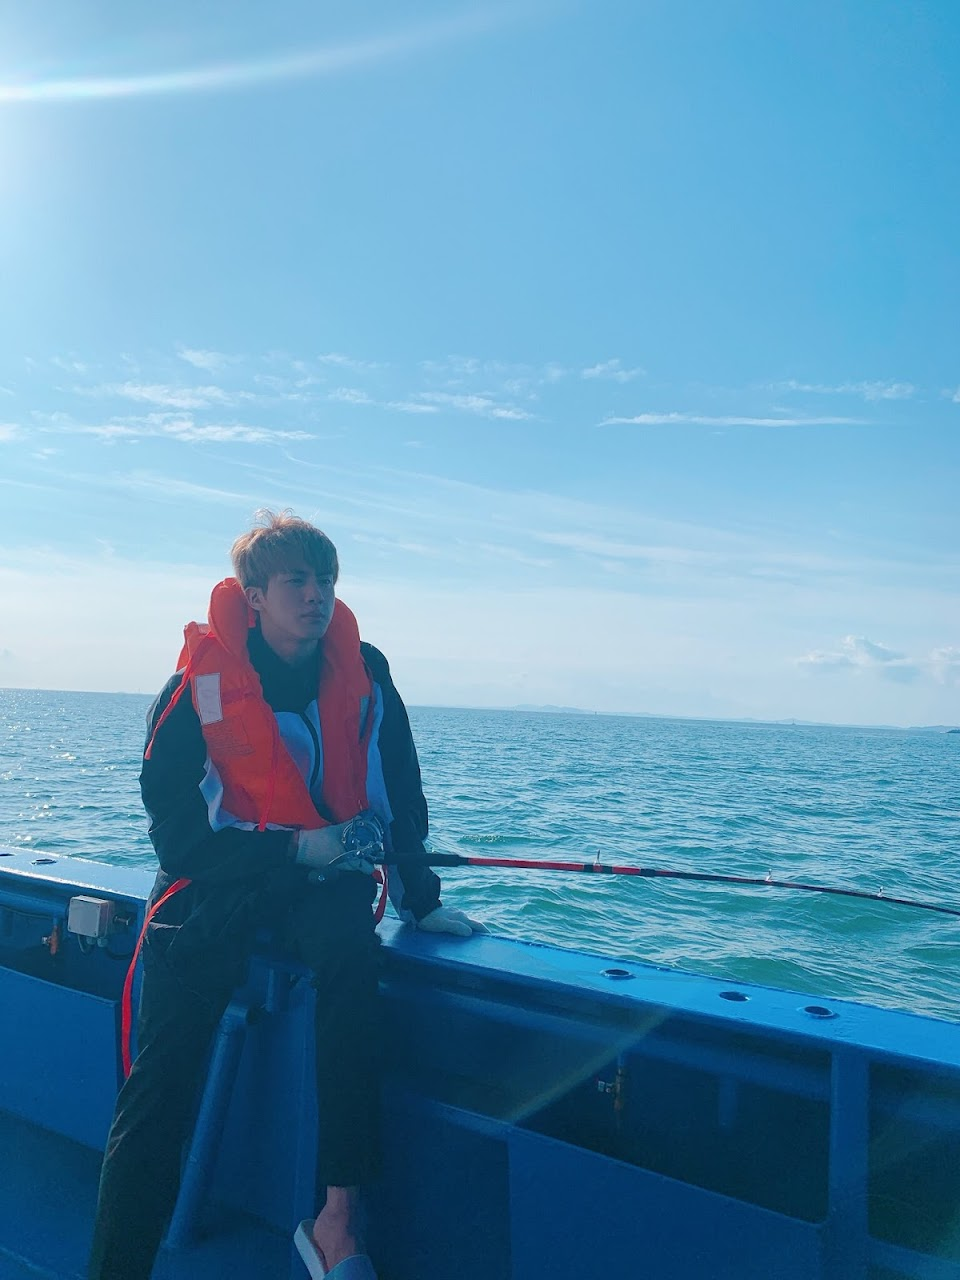 bts jin fishing1